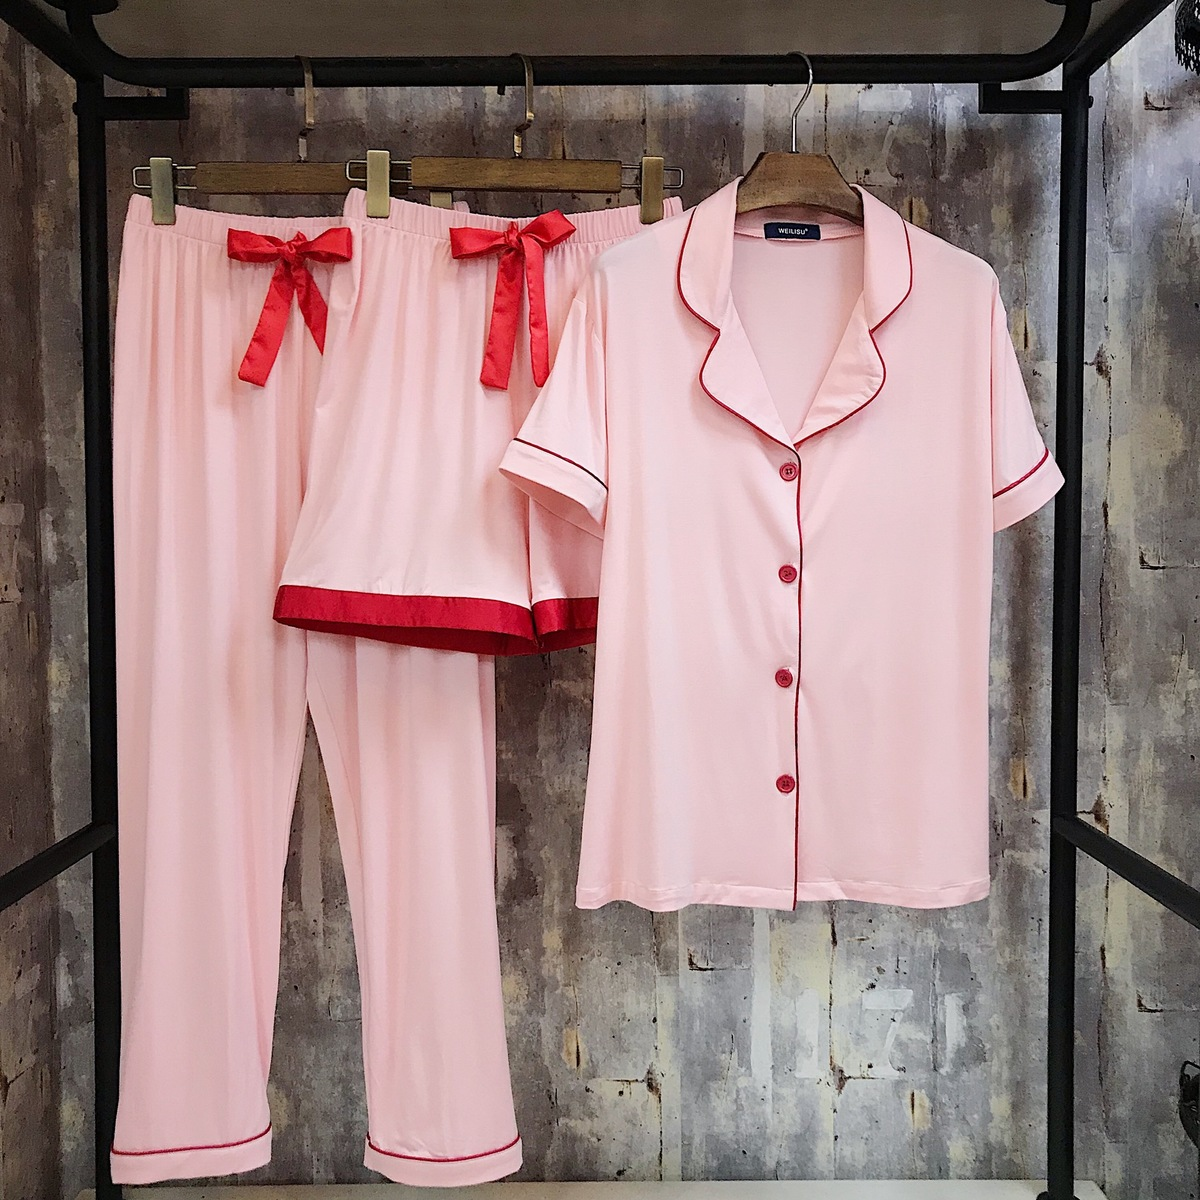 RenYvtil 2018 Spring and Summer Womens Modal Pajamas Color Matching Short Sleeve Trousers Set Three Piece Home Cloth Sleepwear